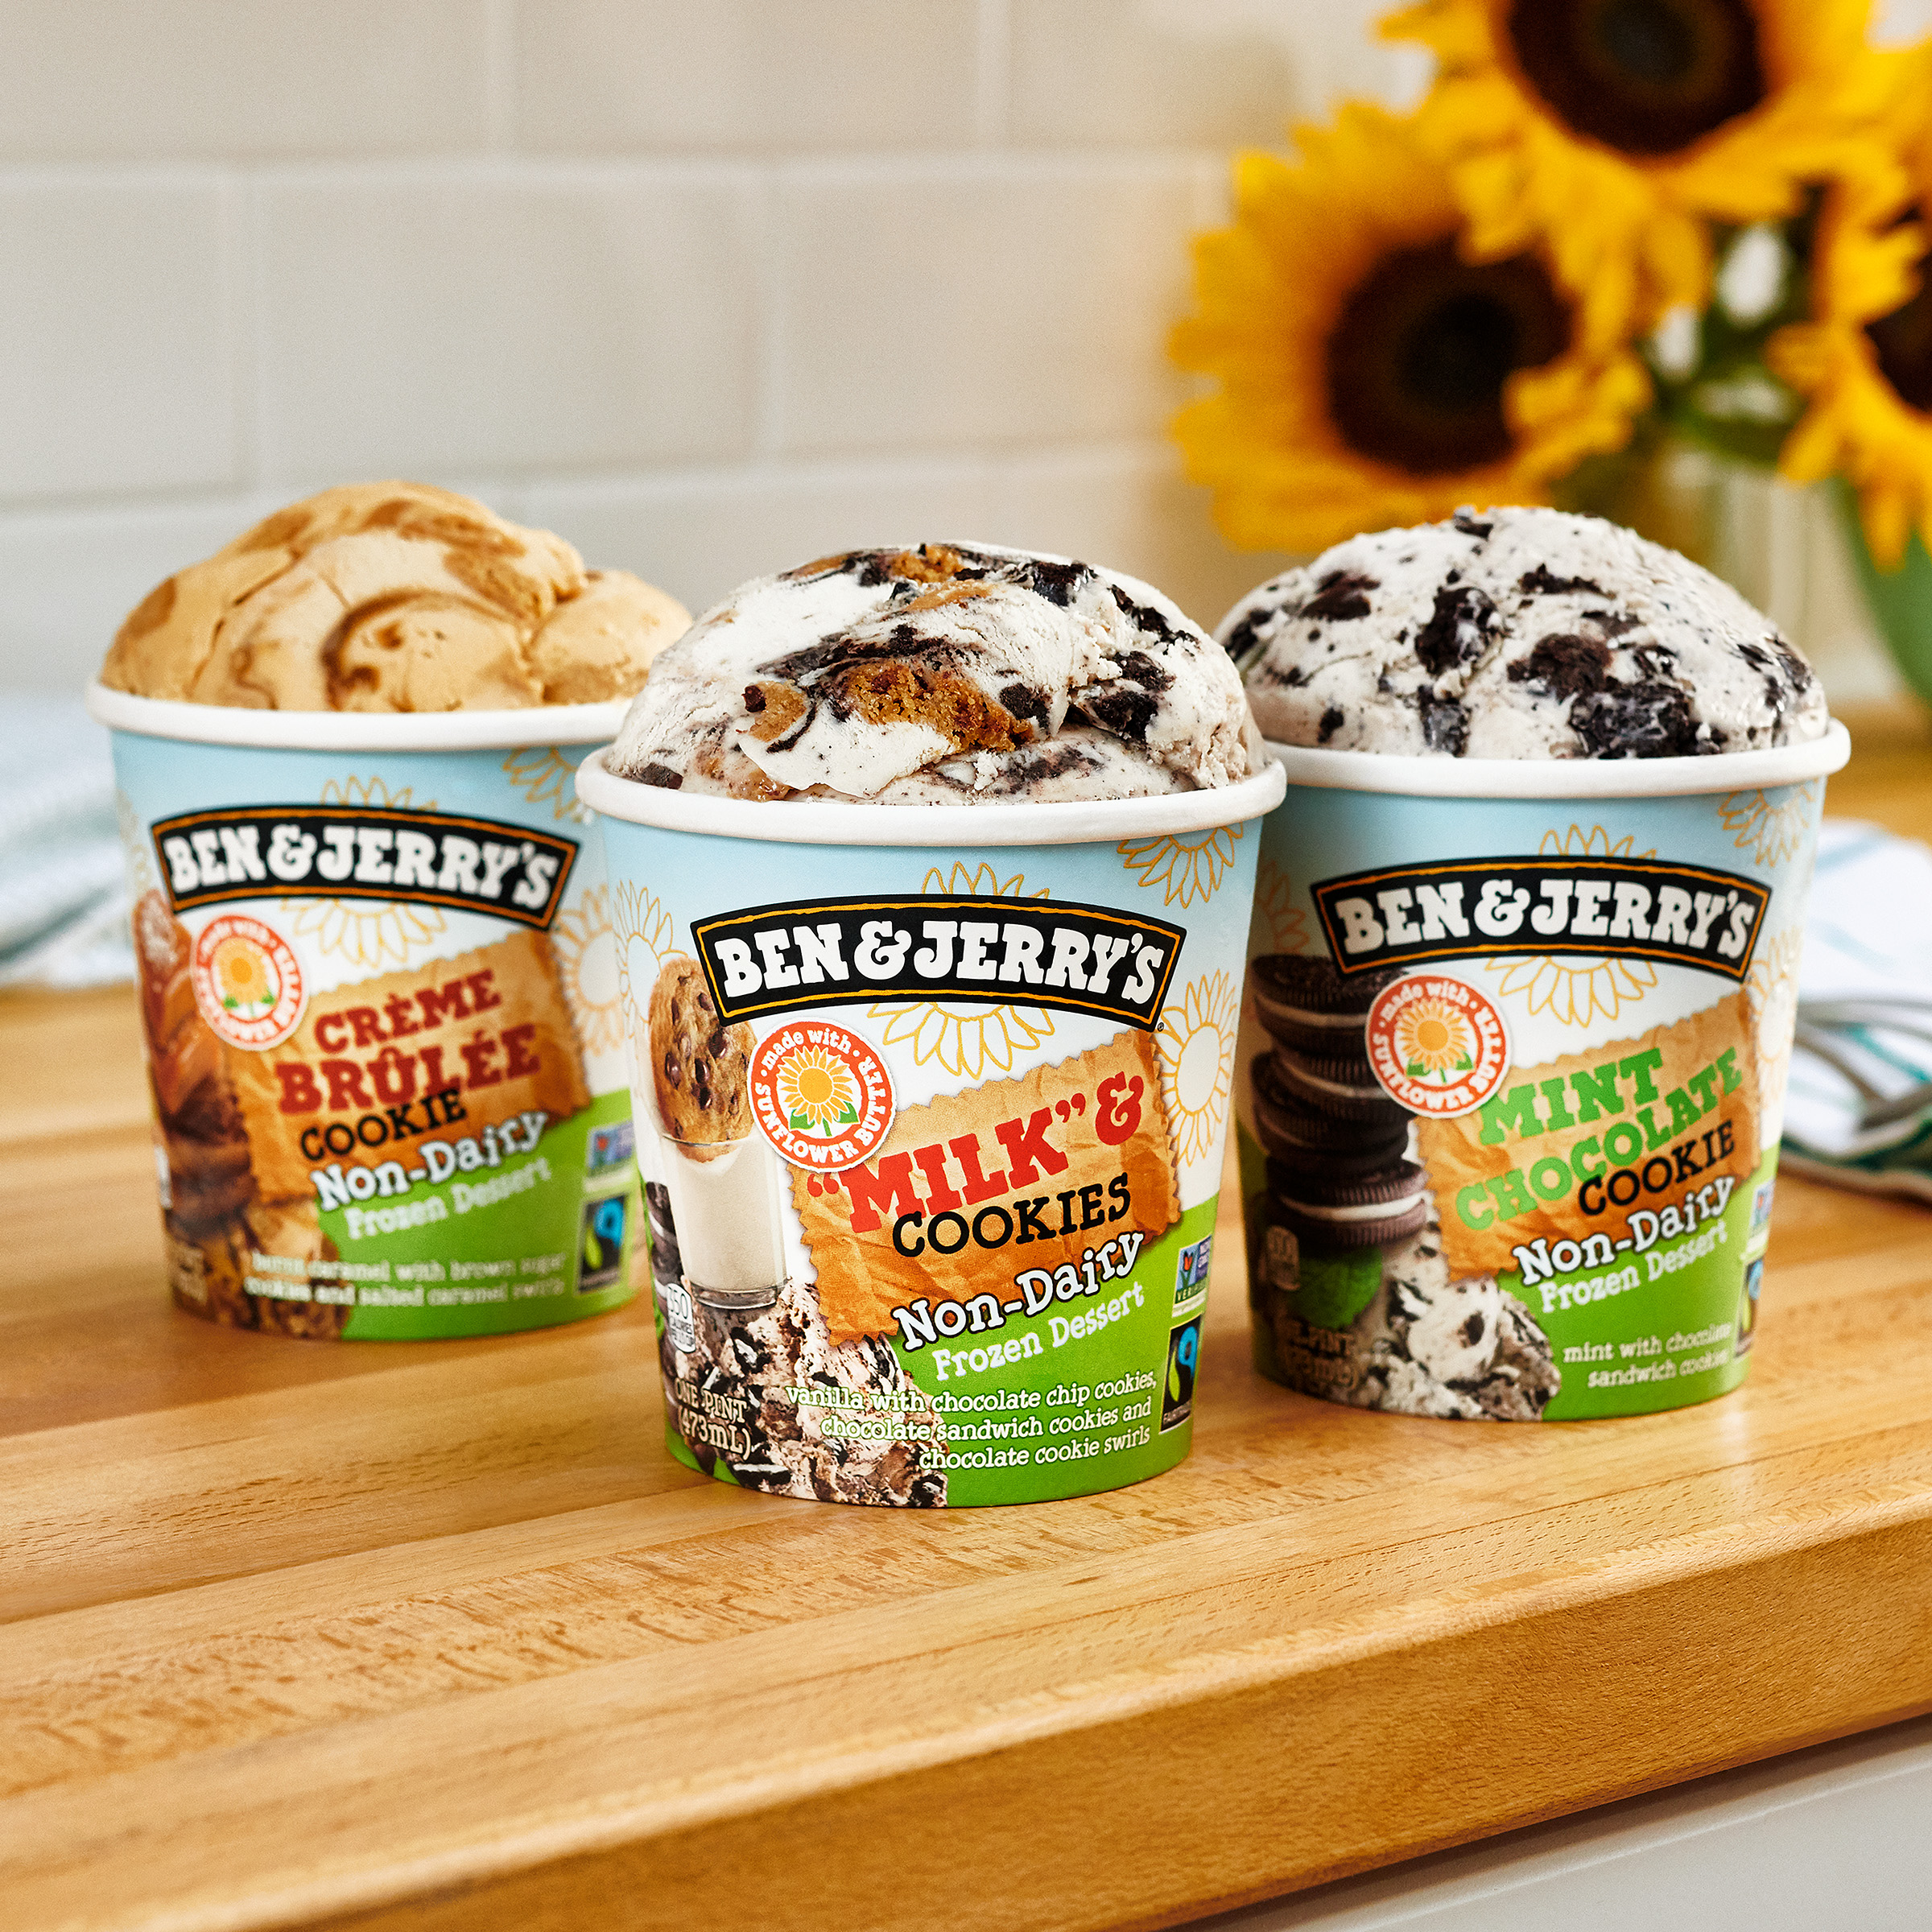 """Ben & Jerry's launches three new sunflower butter flavors: Crème Brûlée Cookie, """"Milk"""" & Cookies, and Mint Chocolate Cookie, available on shelves now."""